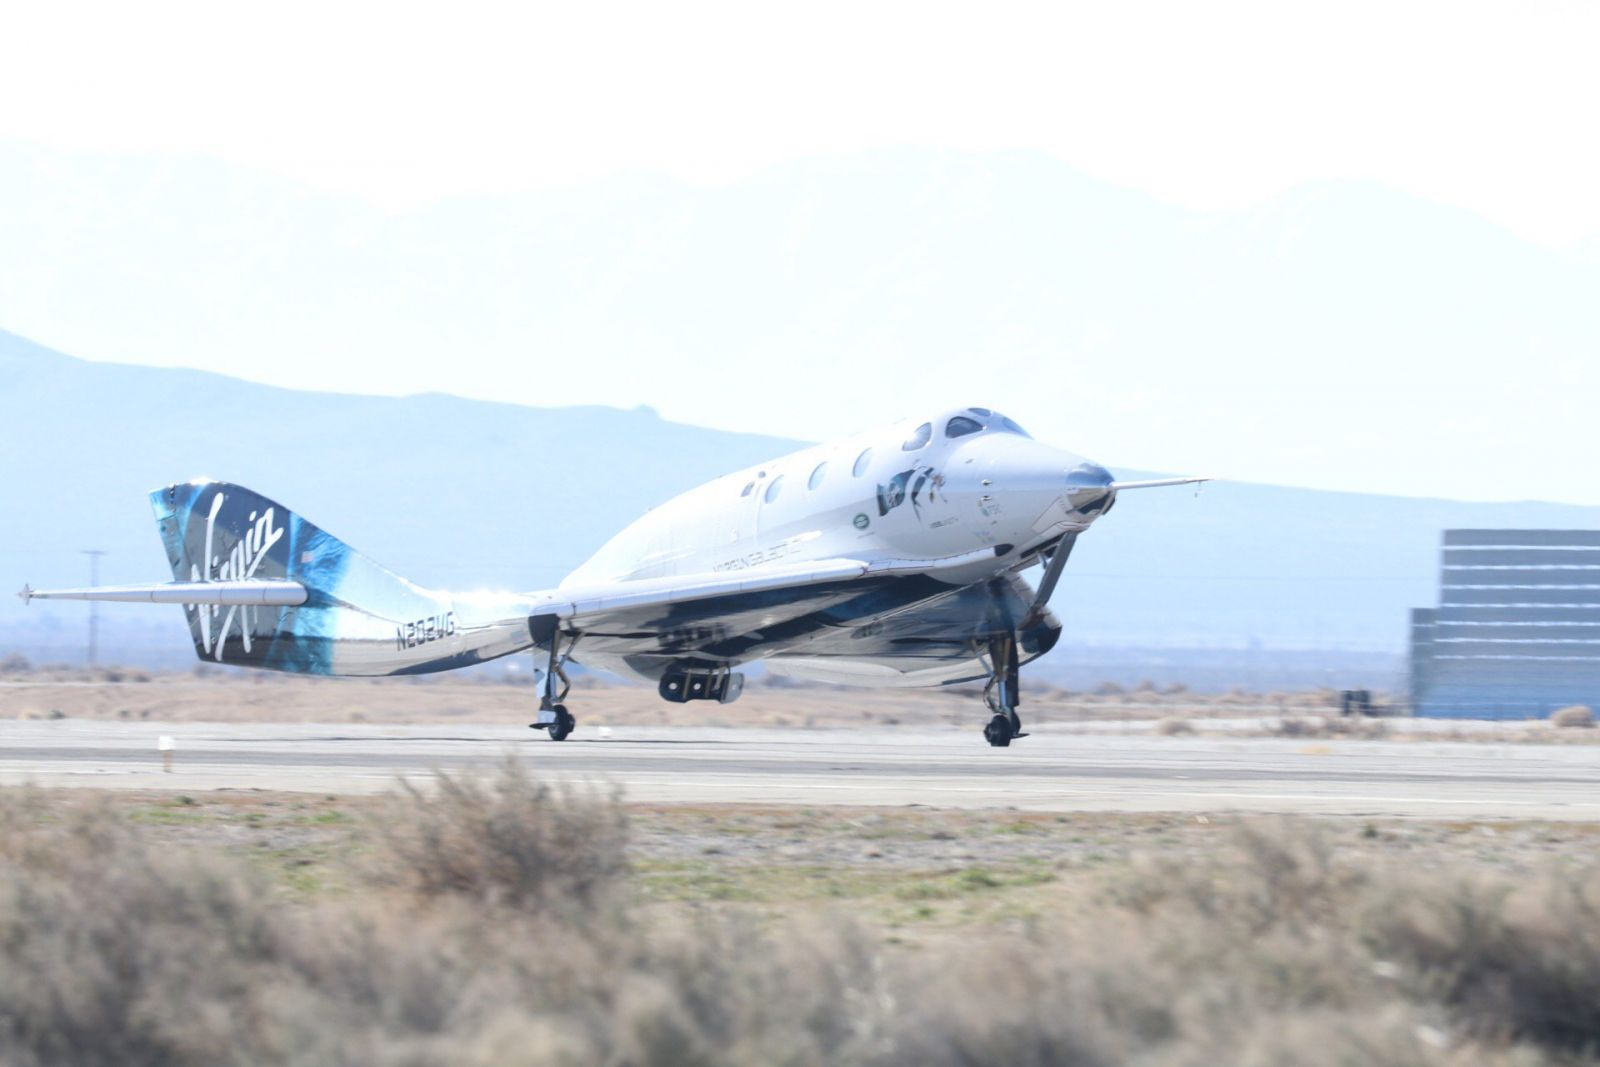 SpaceShipTwo glides back to the runway following its fifth power flight and second trip to space. Photo Credit: Virgin Galactic